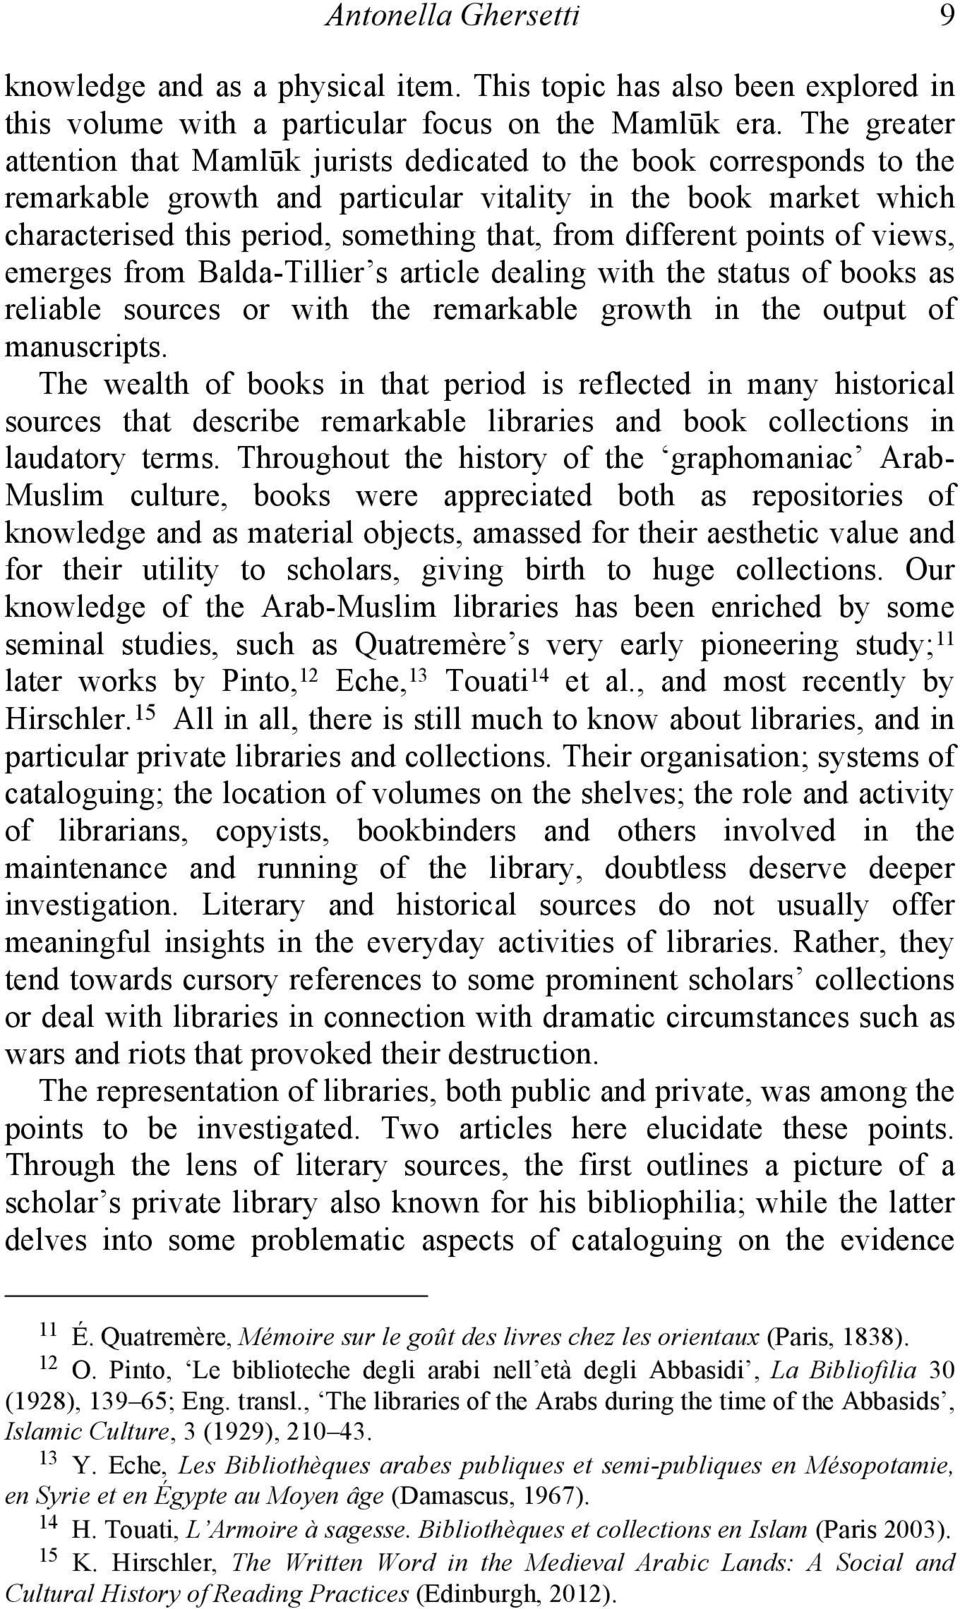 different points of views, emerges from Balda-Tillier s article dealing with the status of books as reliable sources or with the remarkable growth in the output of manuscripts.